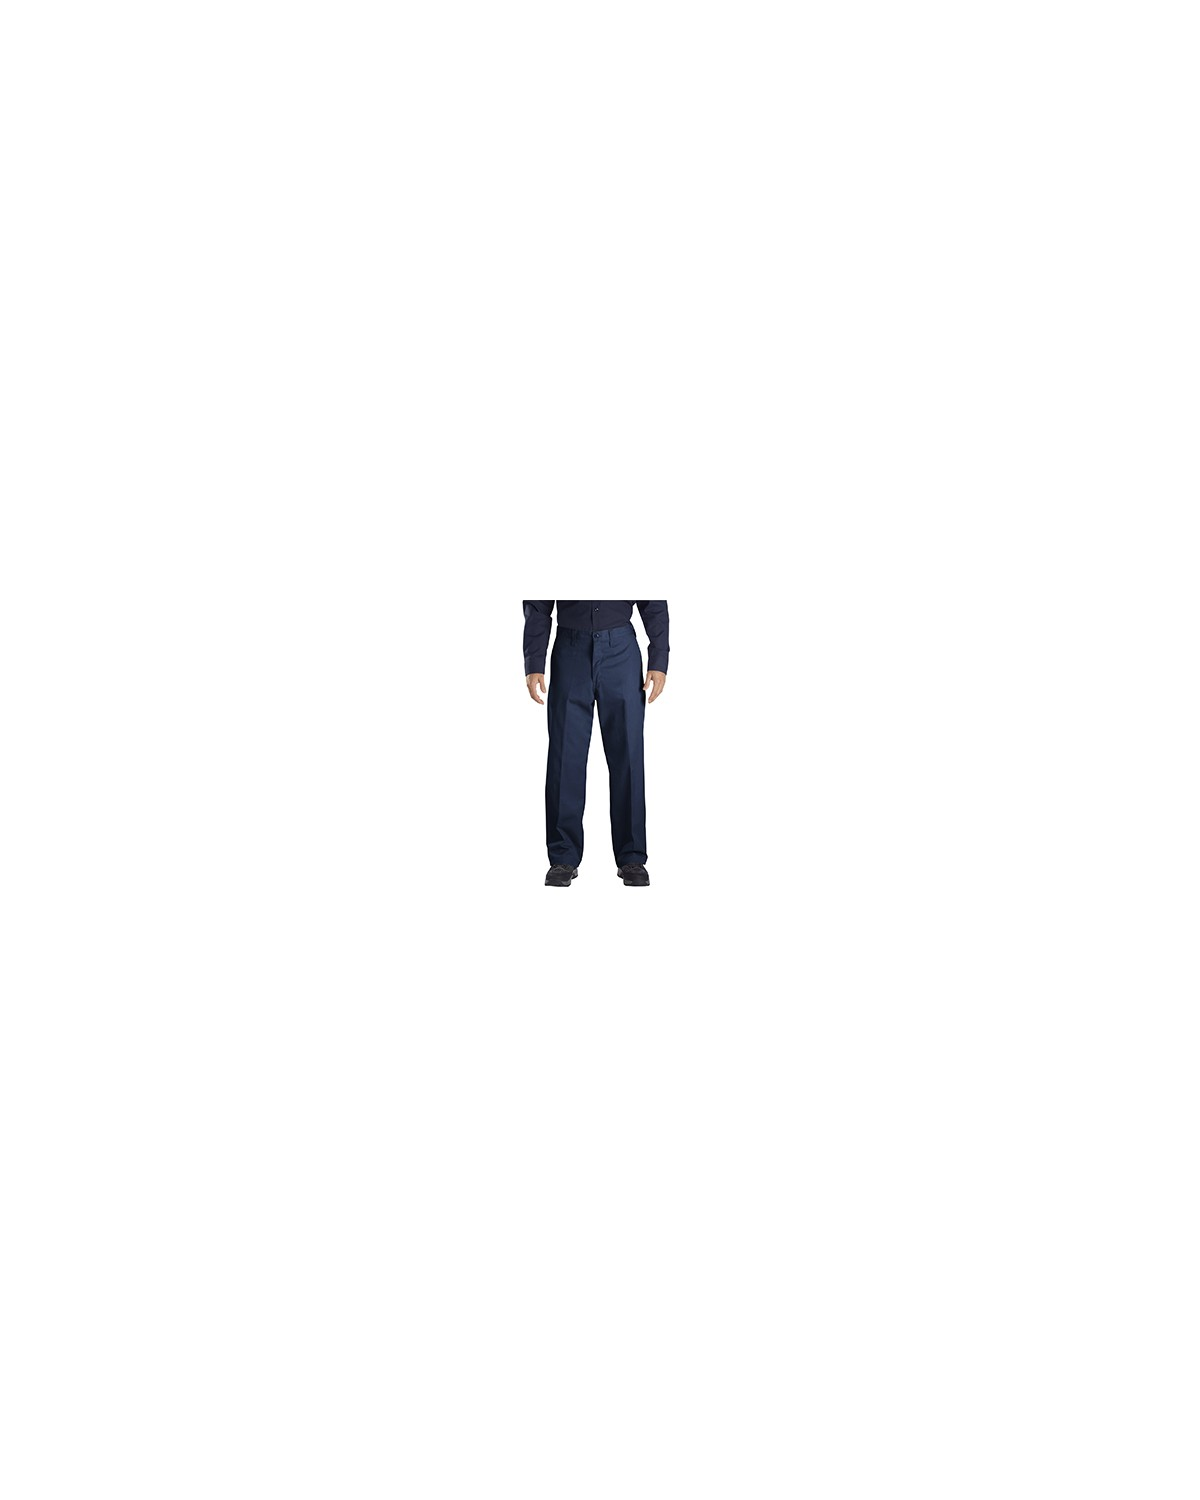 LP812 Dickies DARK NAVY 44